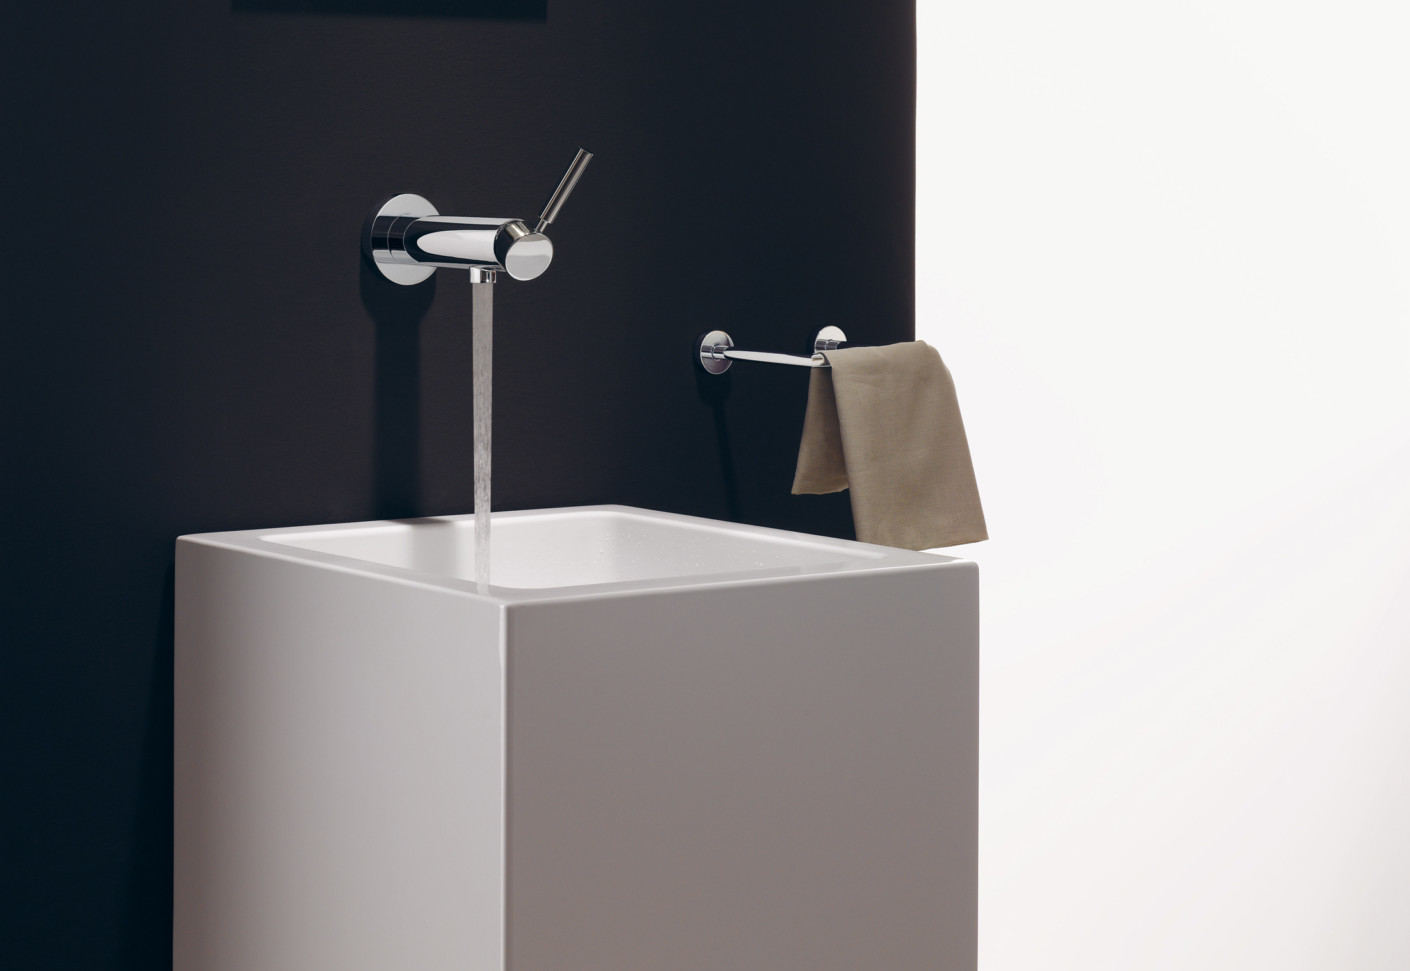 basin dating site A sink — also known by other names including sinker, washbowl, hand basin and wash basin—is a bowl-shaped plumbing fixture used for washing hands.